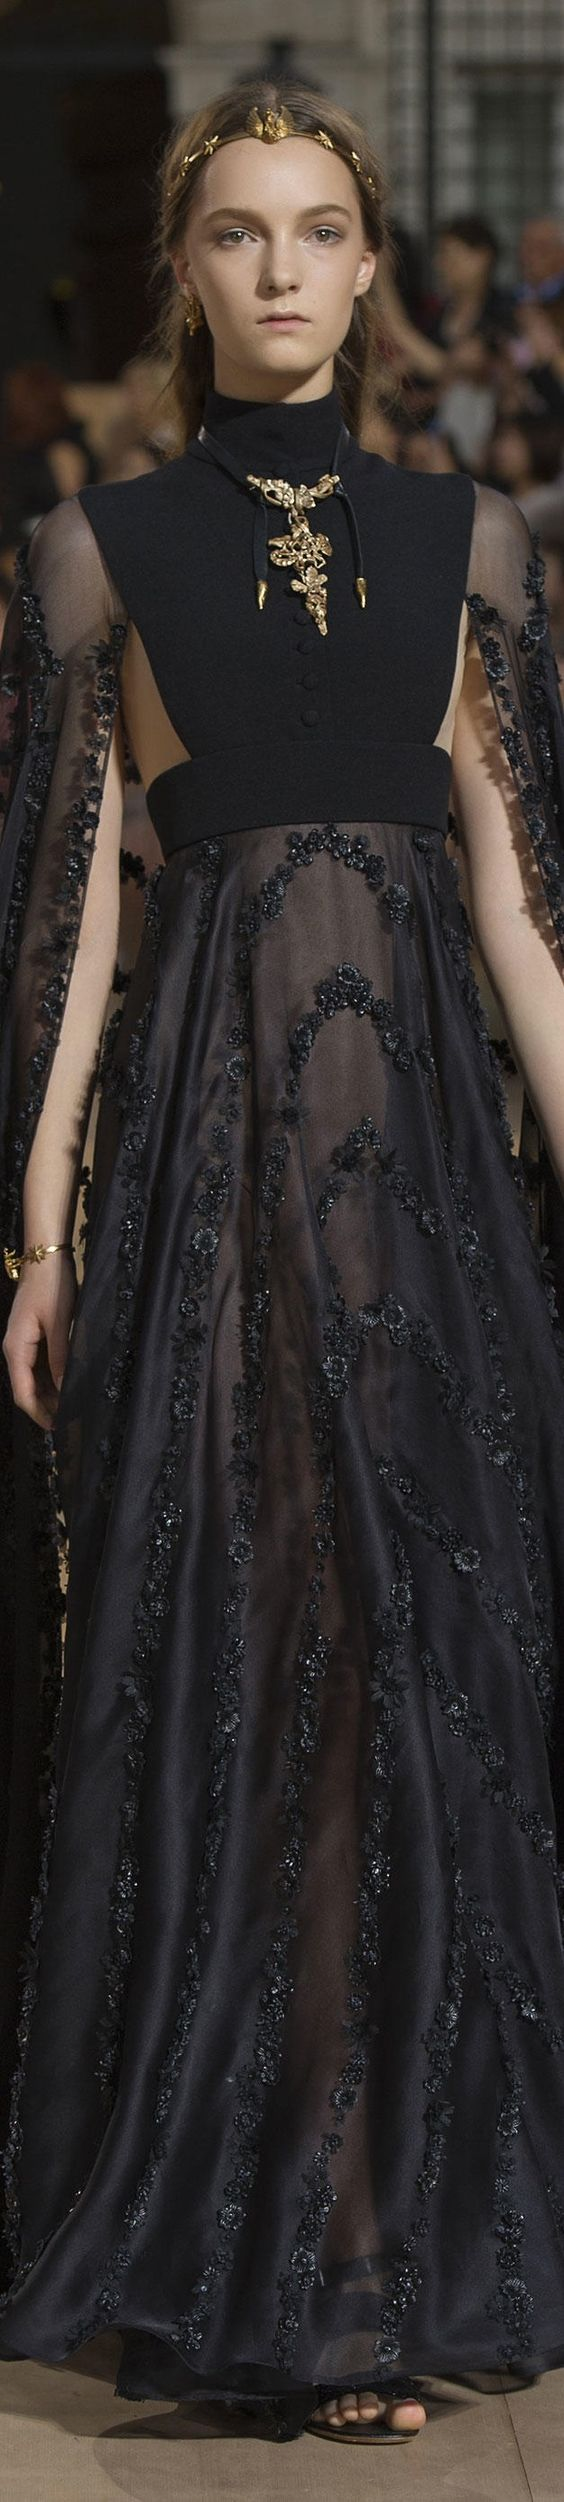 Evening dress valentino fw 2015 couture luxury fashion for Haute couture designers names